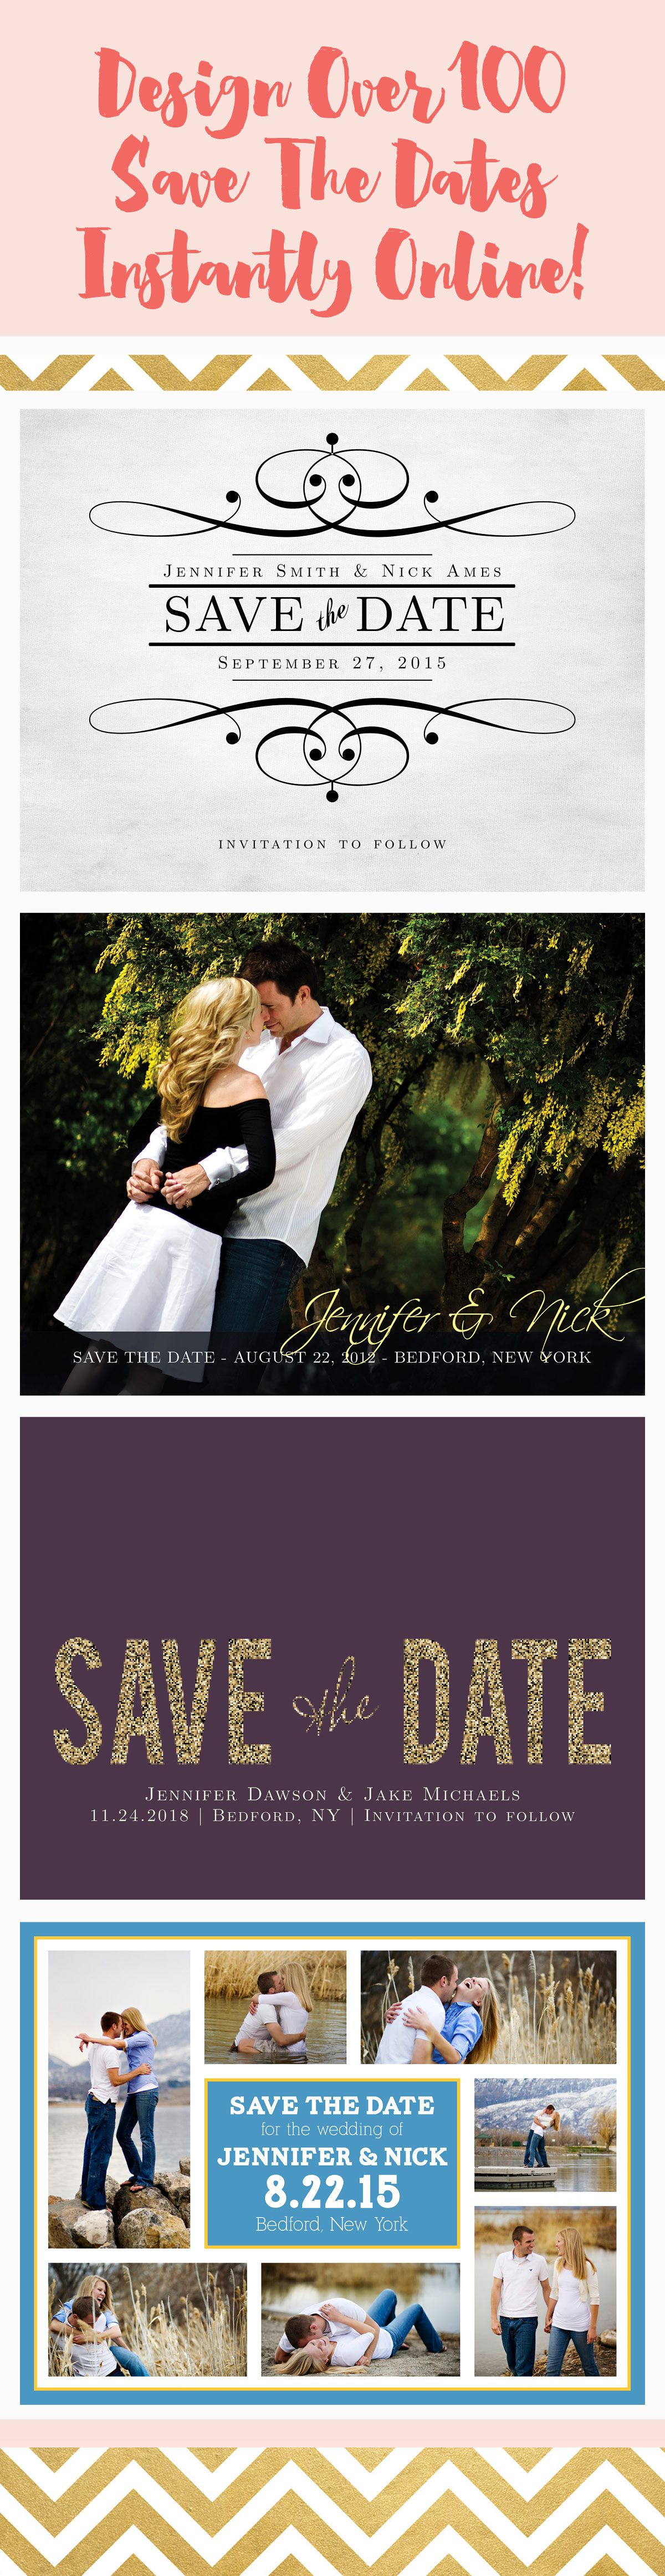 Make Each Design Your Own With Over Different Color Choices And - Design your own save the date template